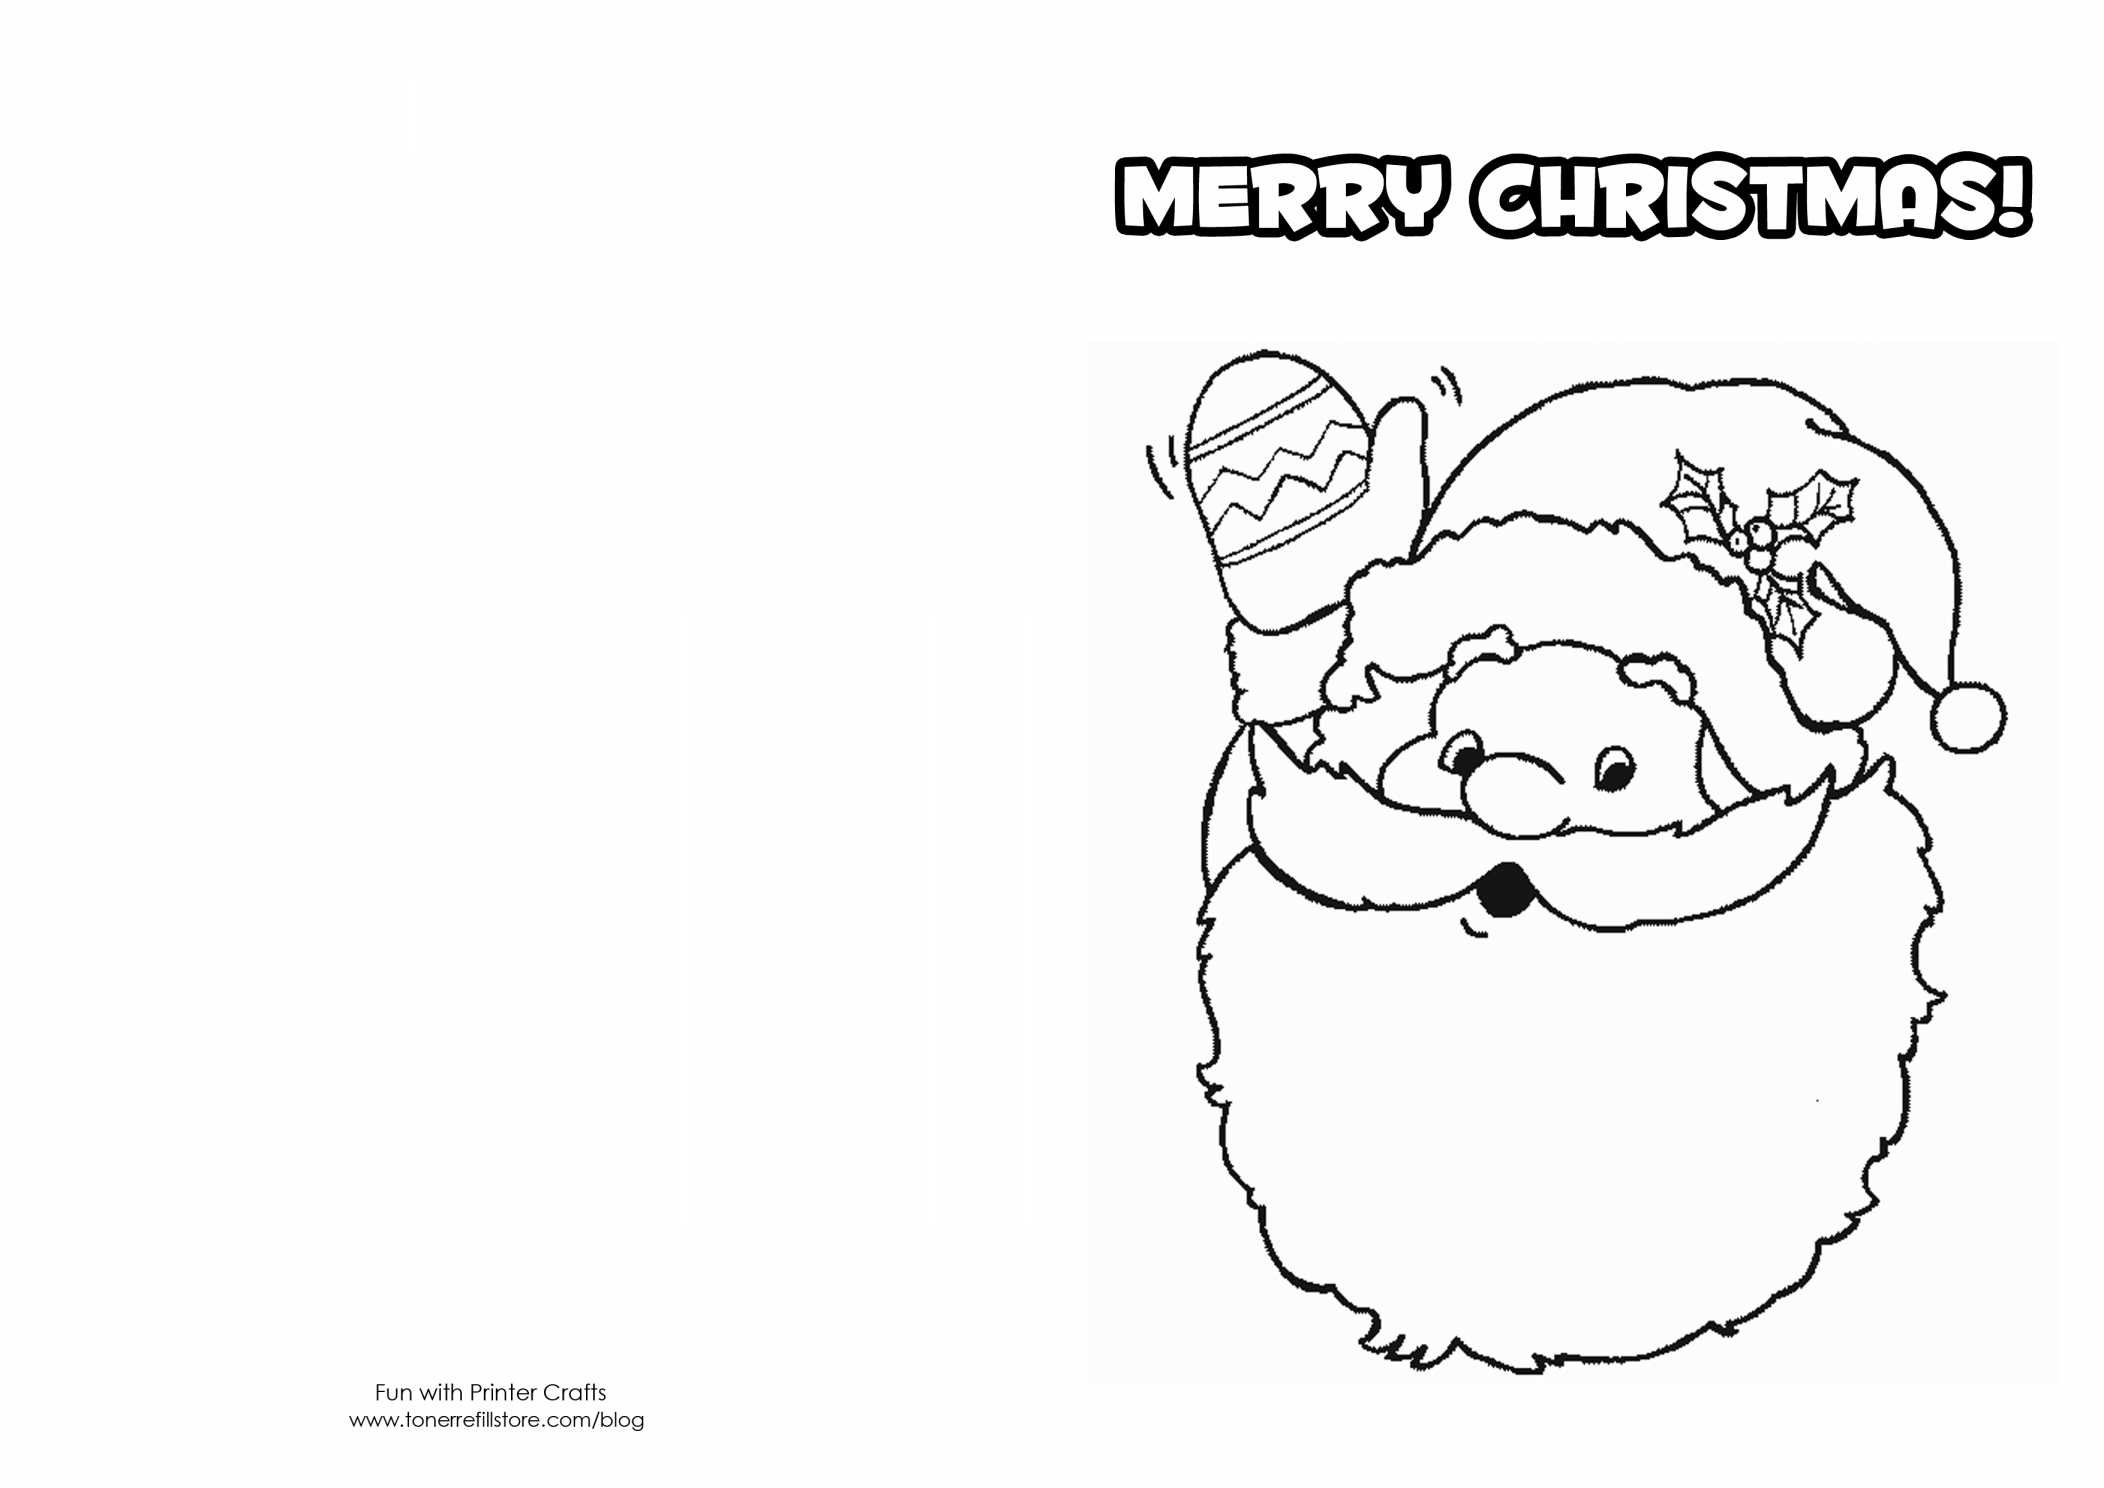 Christmas Card Coloring Pages For Free Download. Card Coloring Pages - Free Printable Christmas Cards To Color